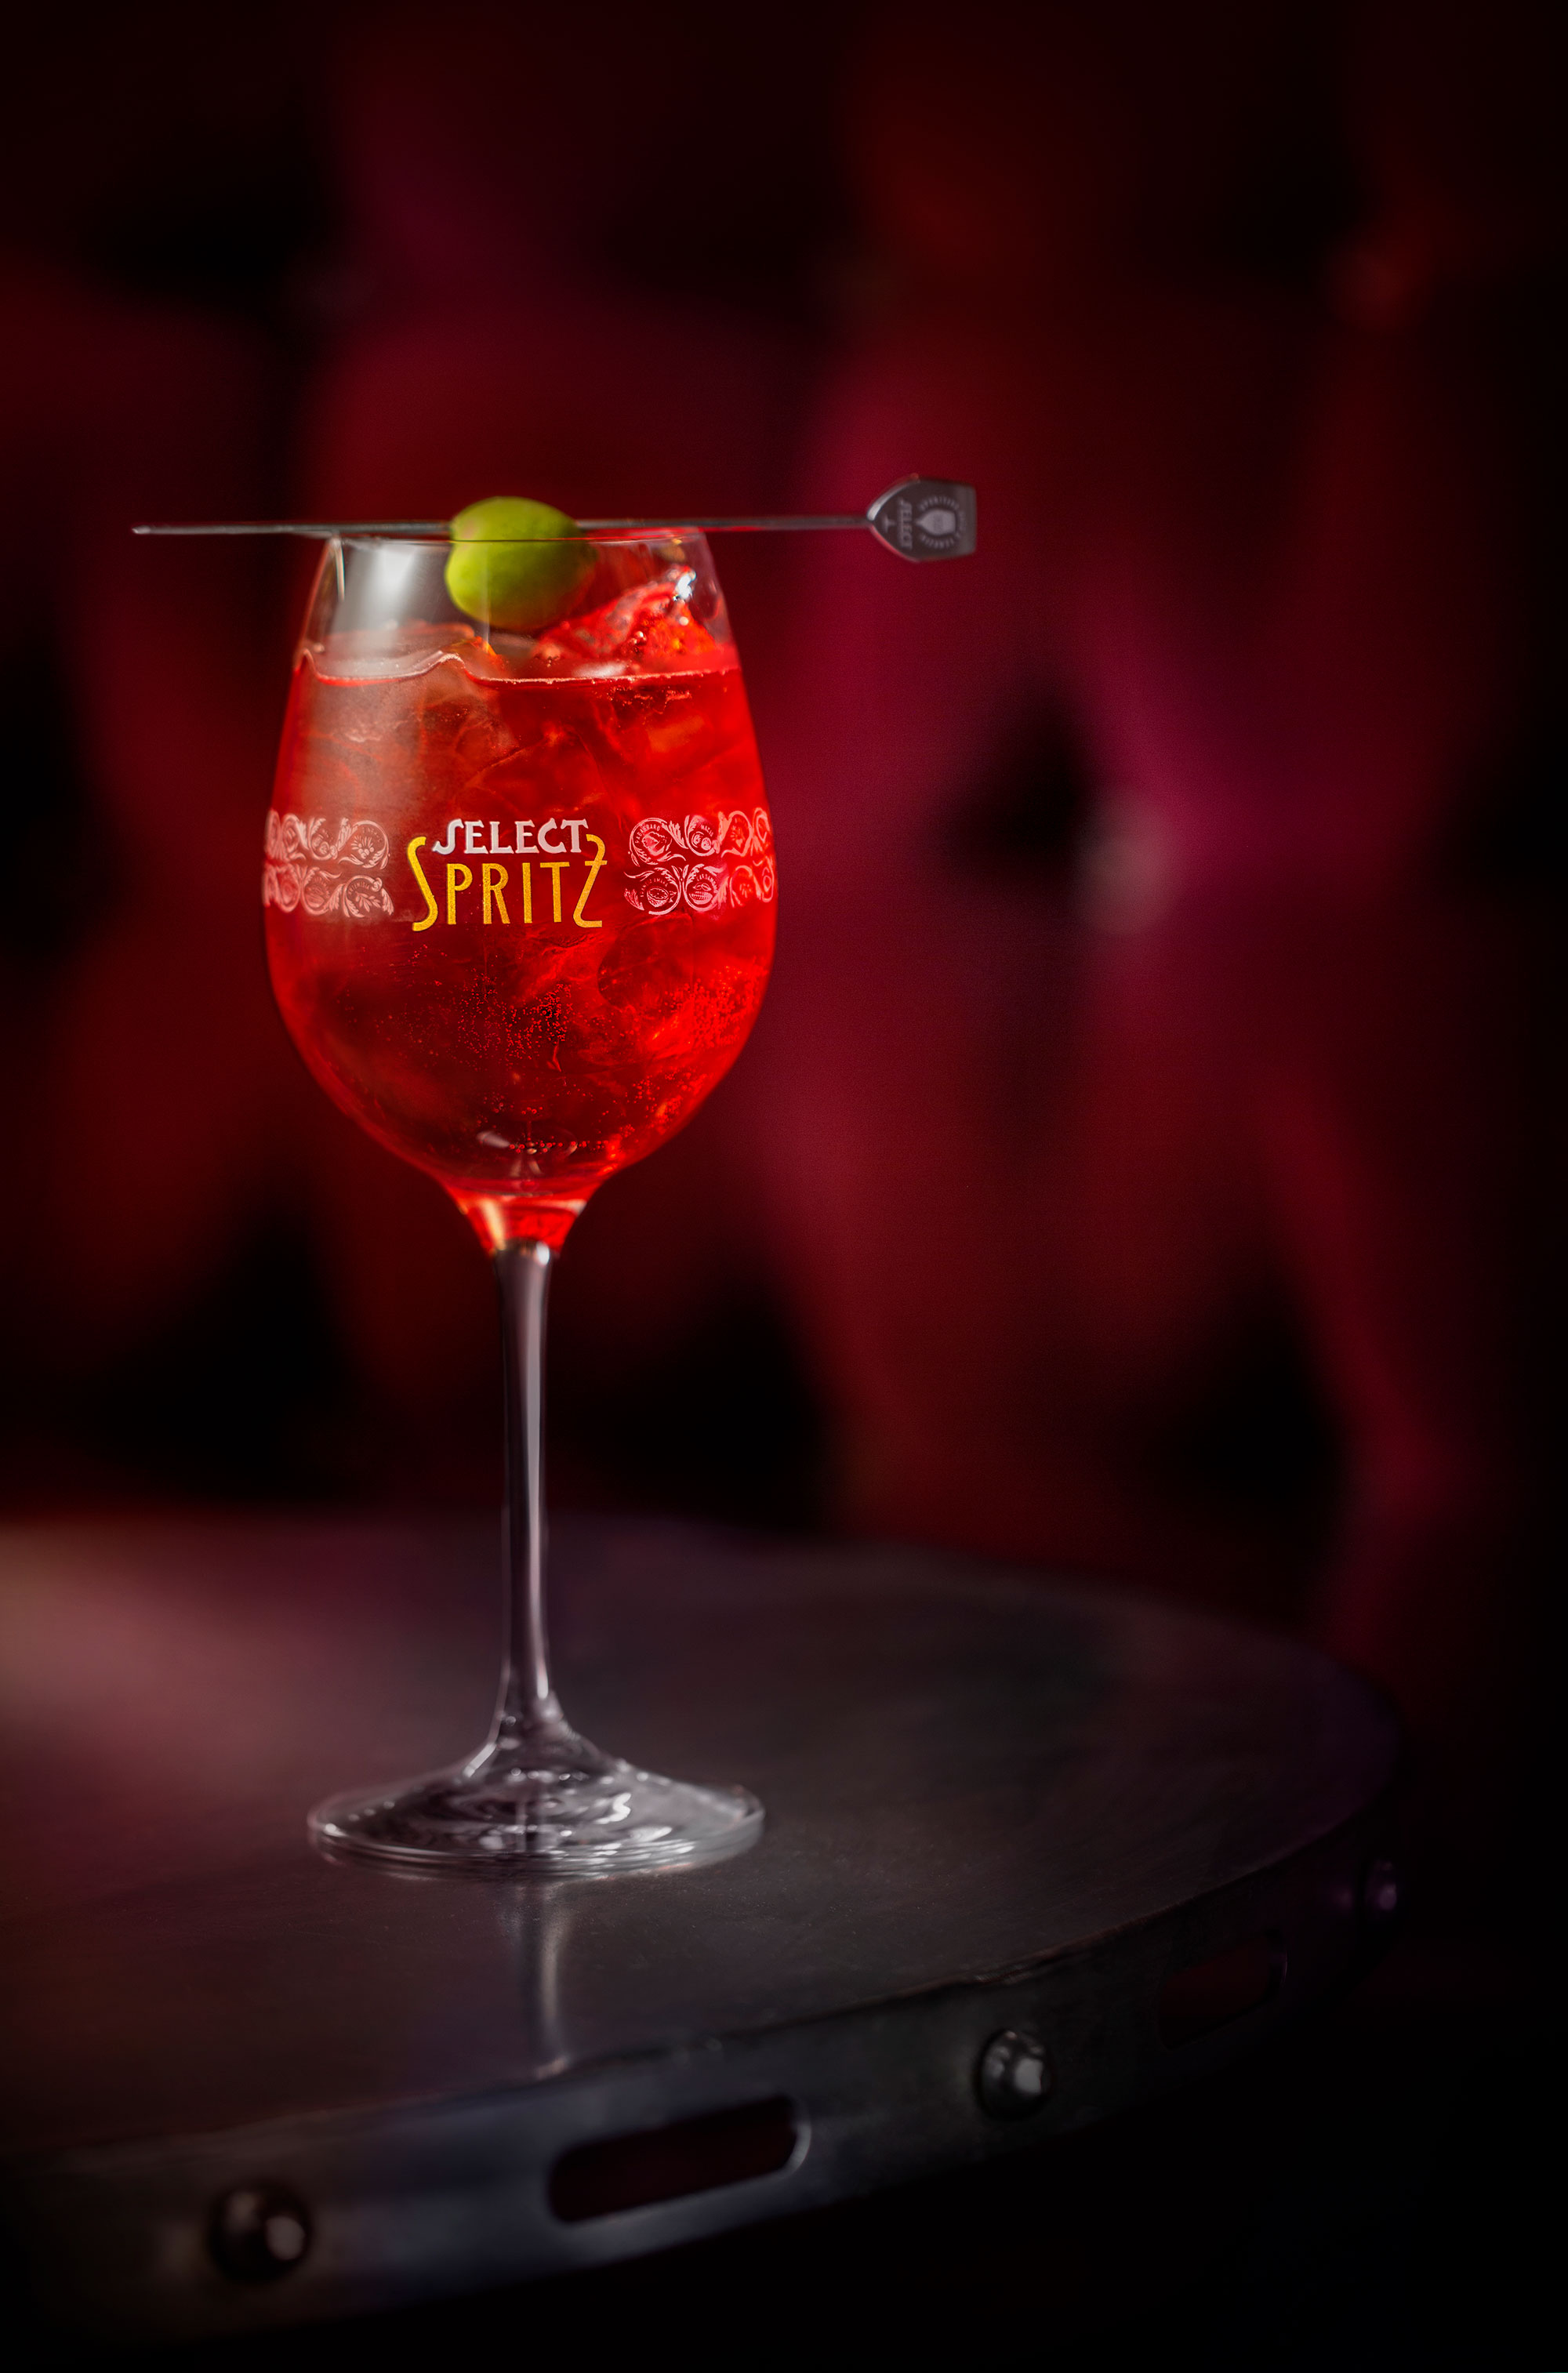 Select-Spritz-RED2.jpg